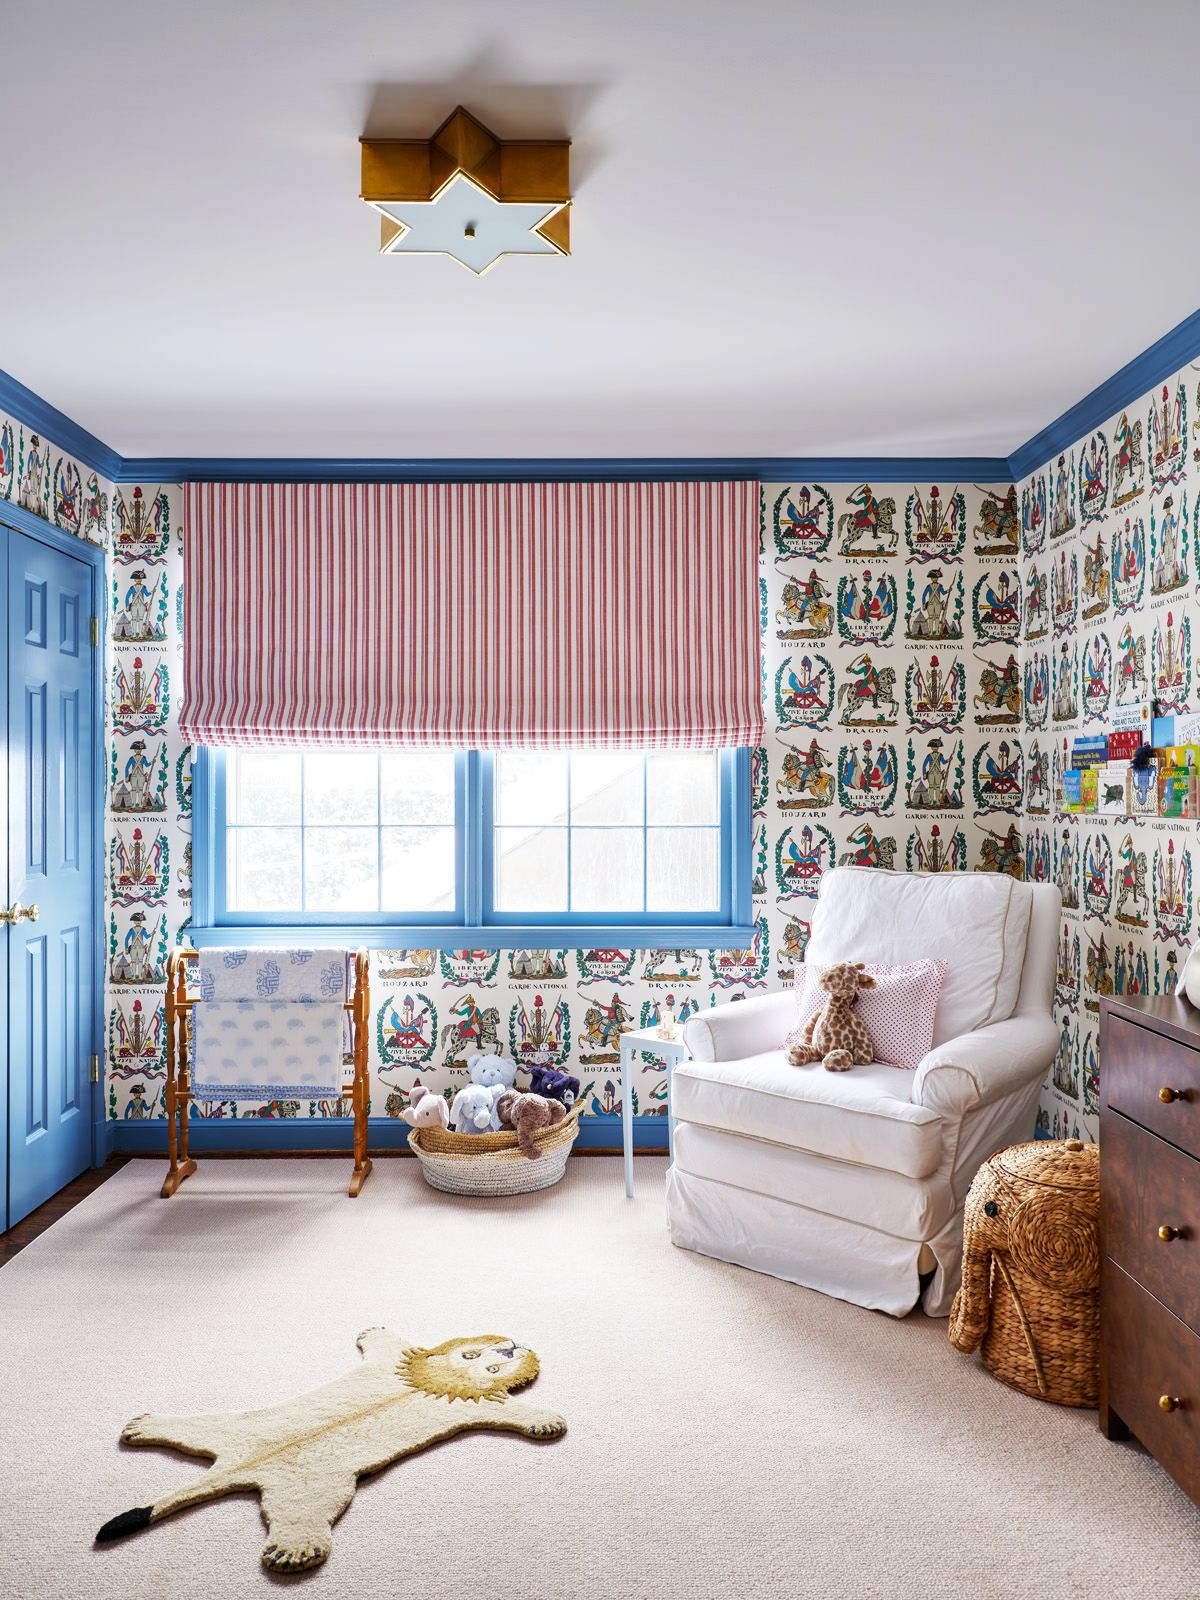 Get the Nursery Ready for Your Little One With These Clever Storage Ideas